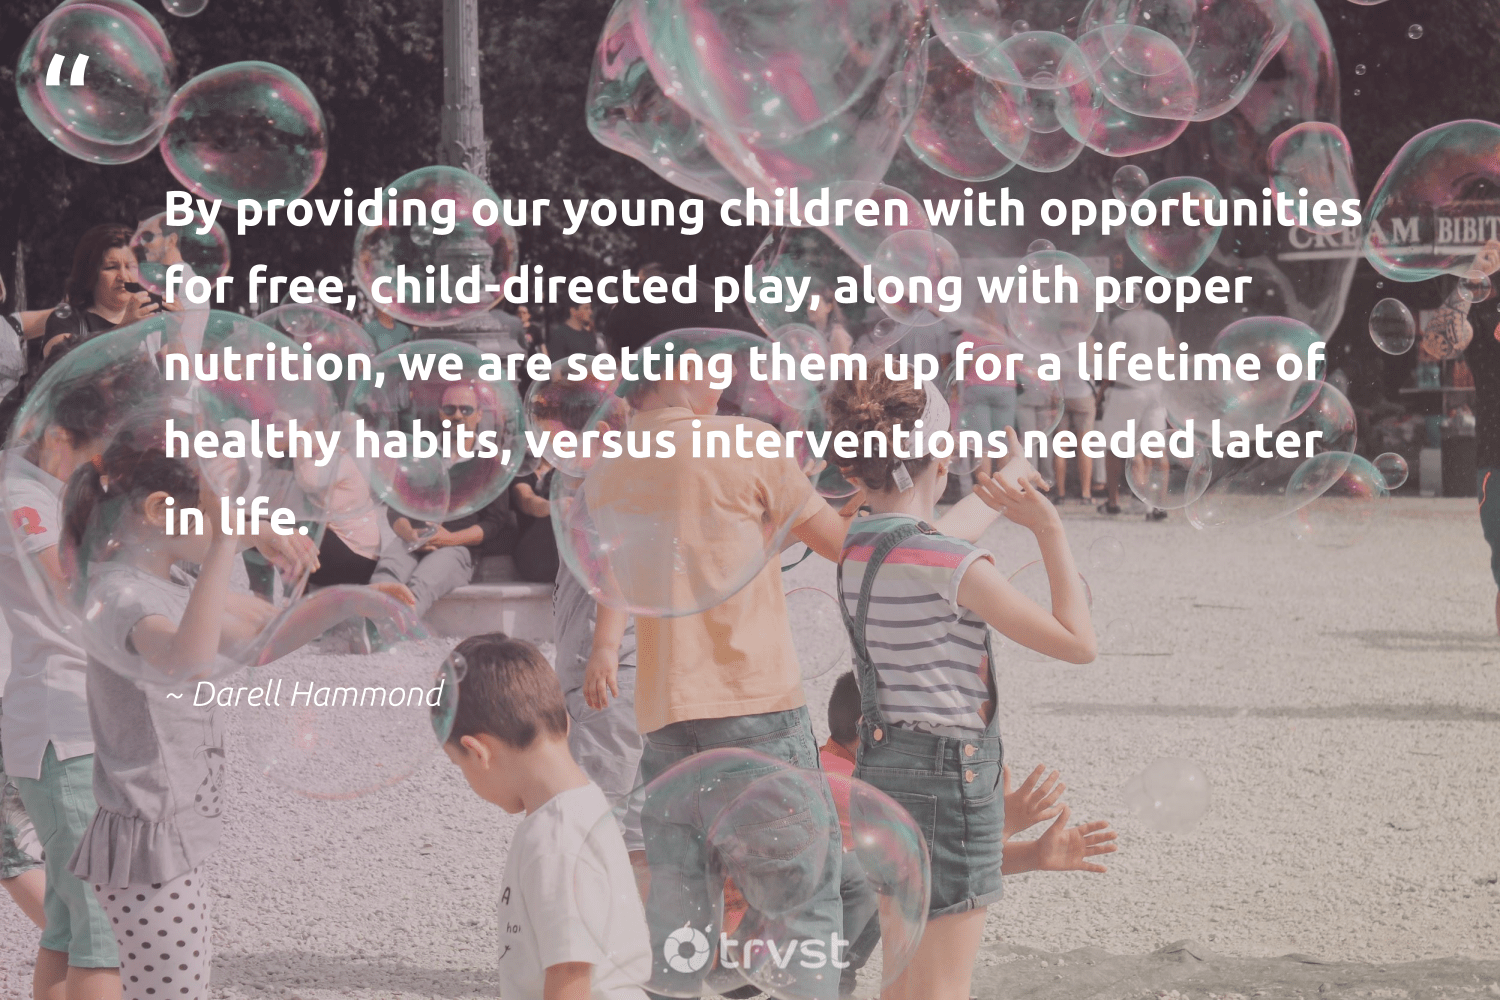 """By providing our young children with opportunities for free, child-directed play, along with proper nutrition, we are setting them up for a lifetime of healthy habits, versus interventions needed later in life.""  - Darell Hammond #trvst #quotes #wellbeing #children #healthy #nutrition #mindset #changemakers #beinspired #healthylife #health #begreat"